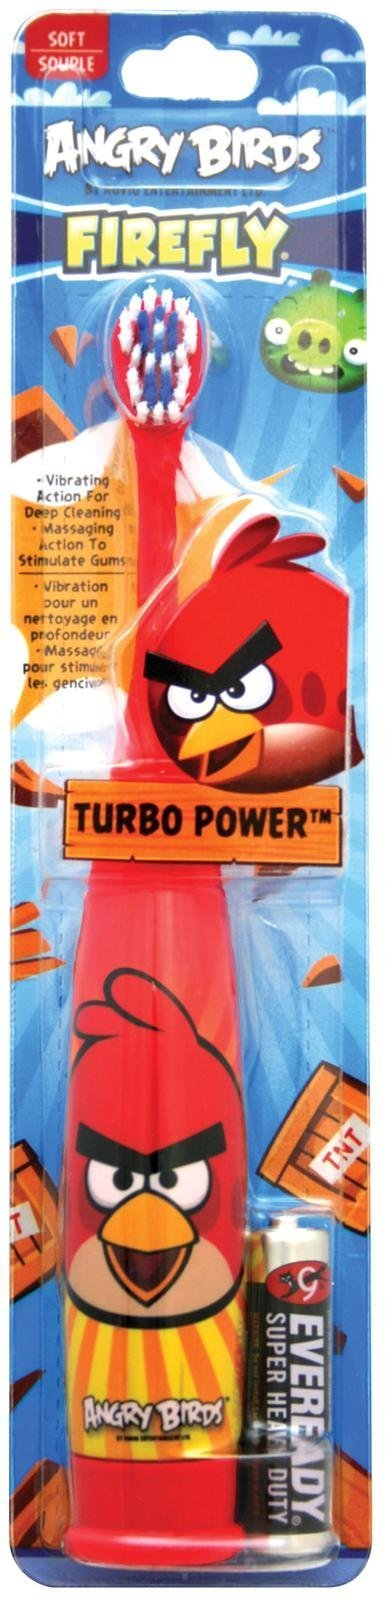 Firefly Power Toothbrush - Angry Birds